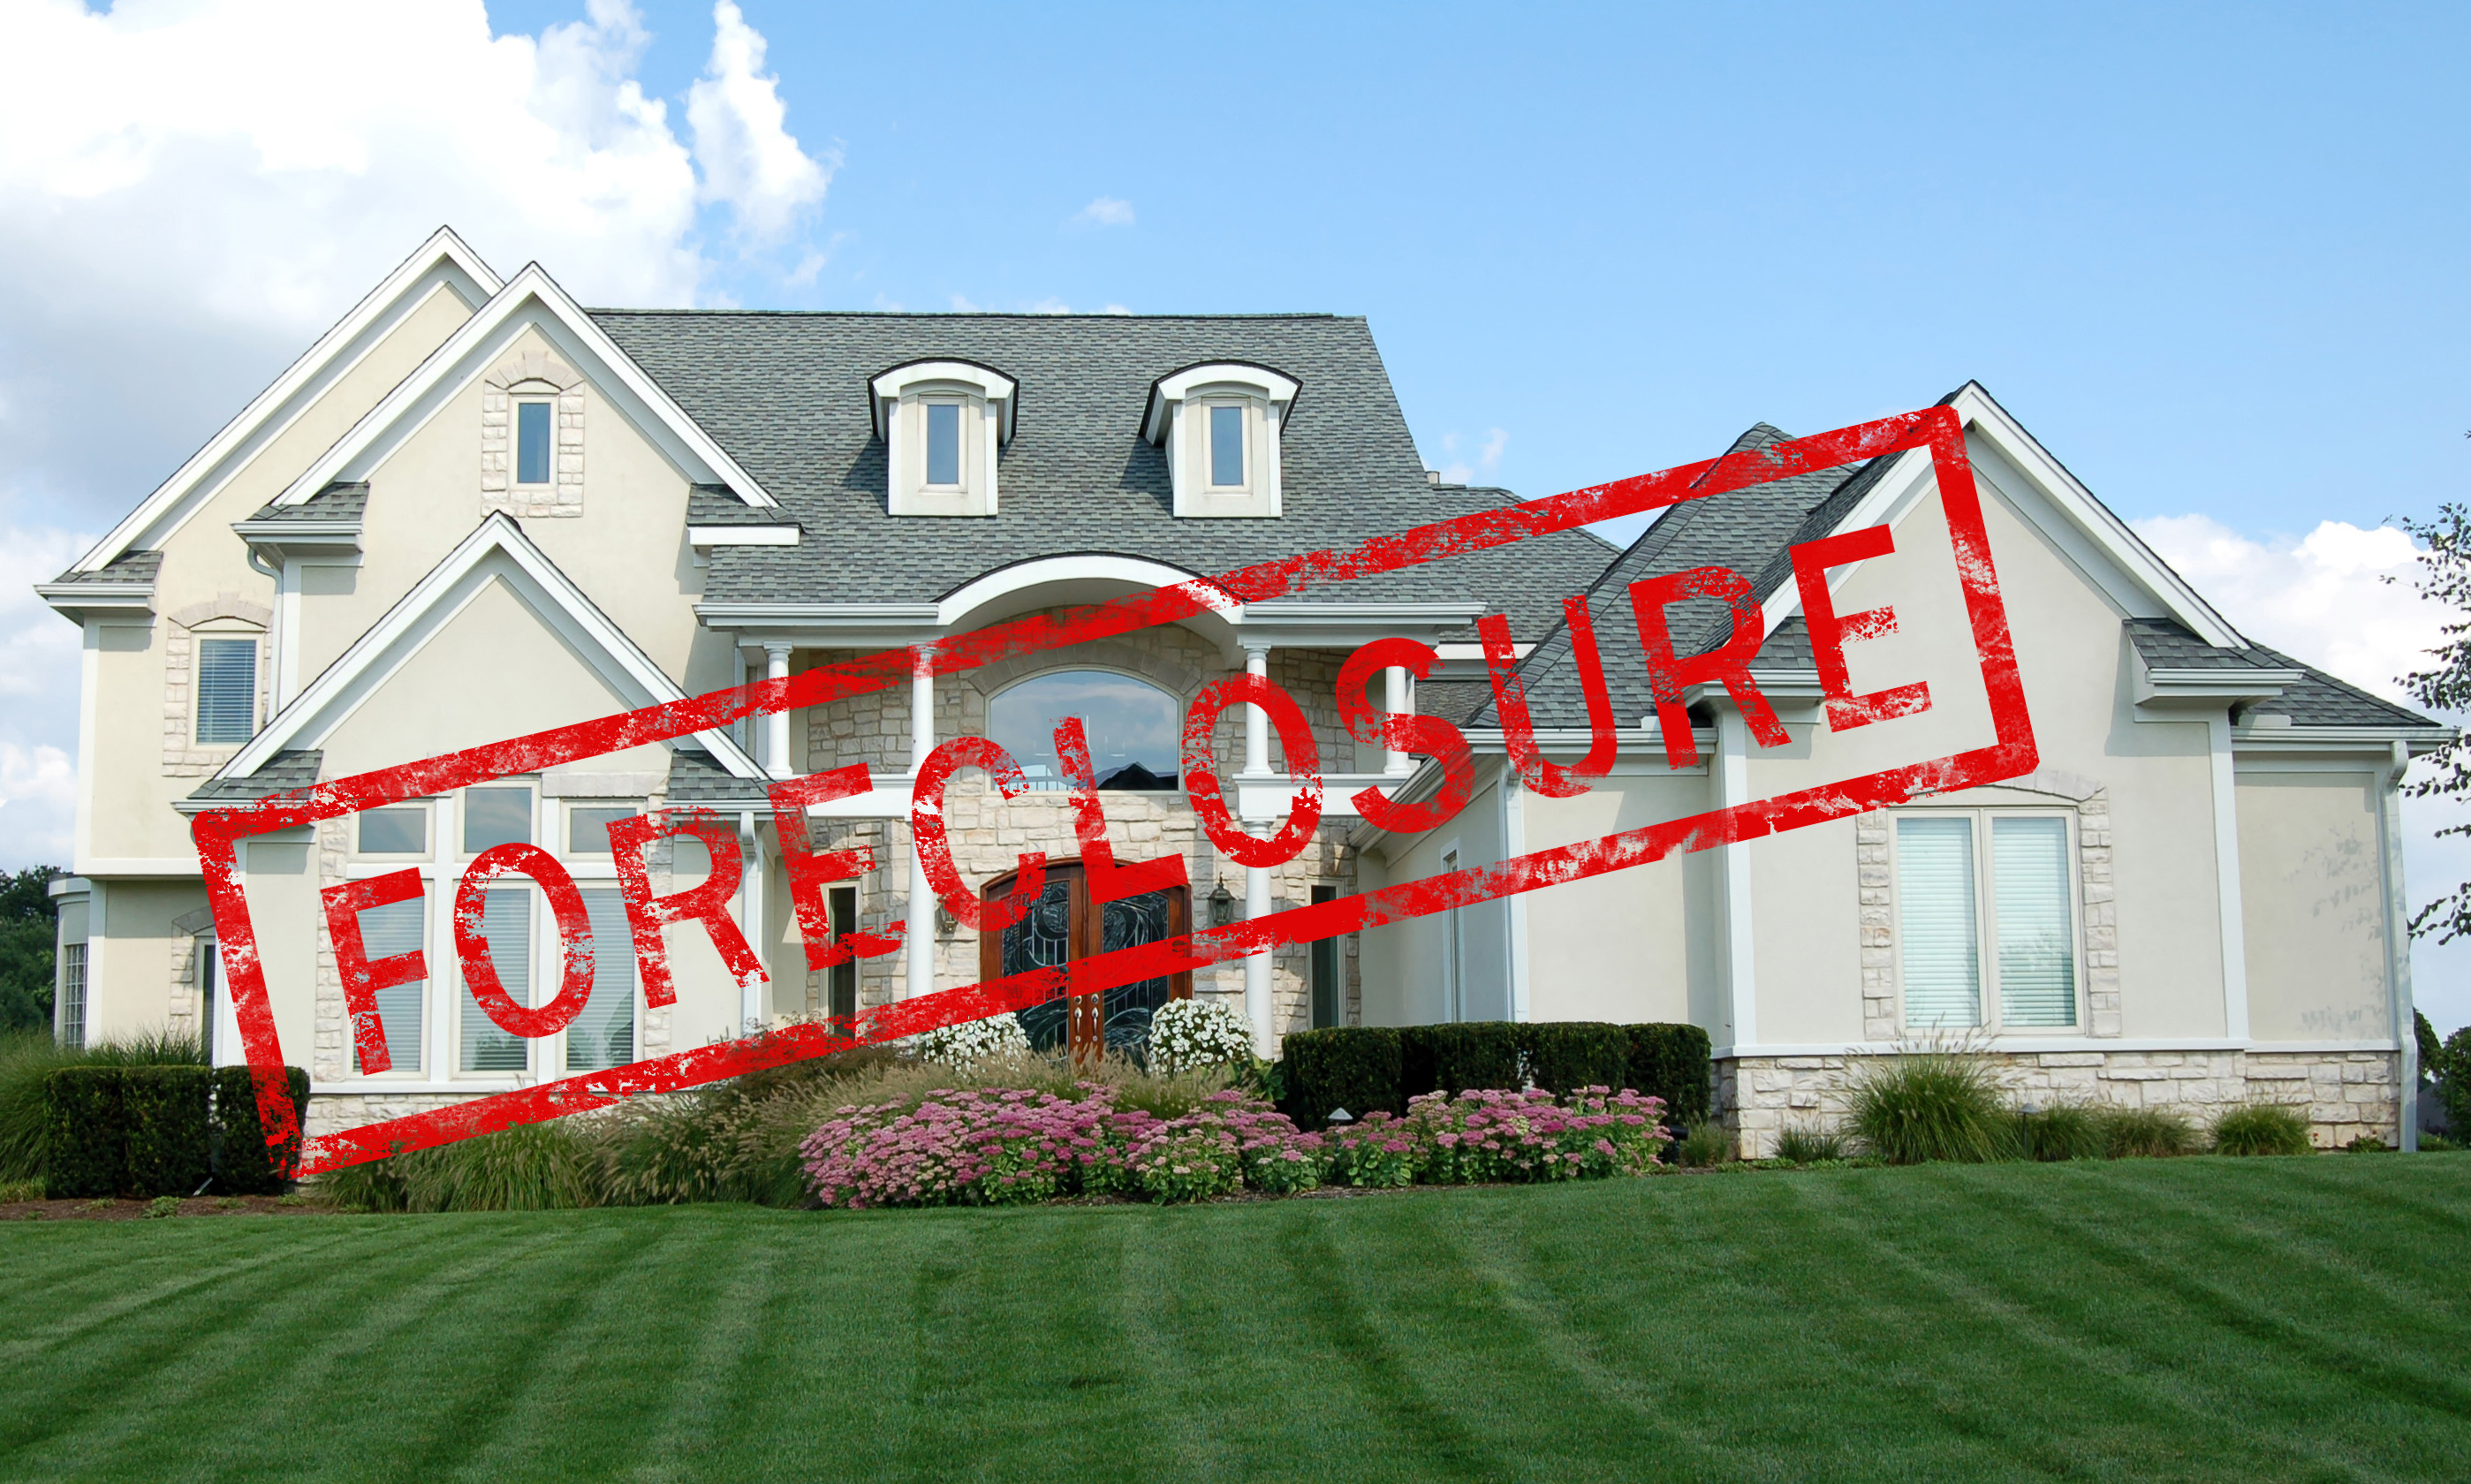 Call Astute Appraisals, Inc. to order valuations pertaining to Howard foreclosures